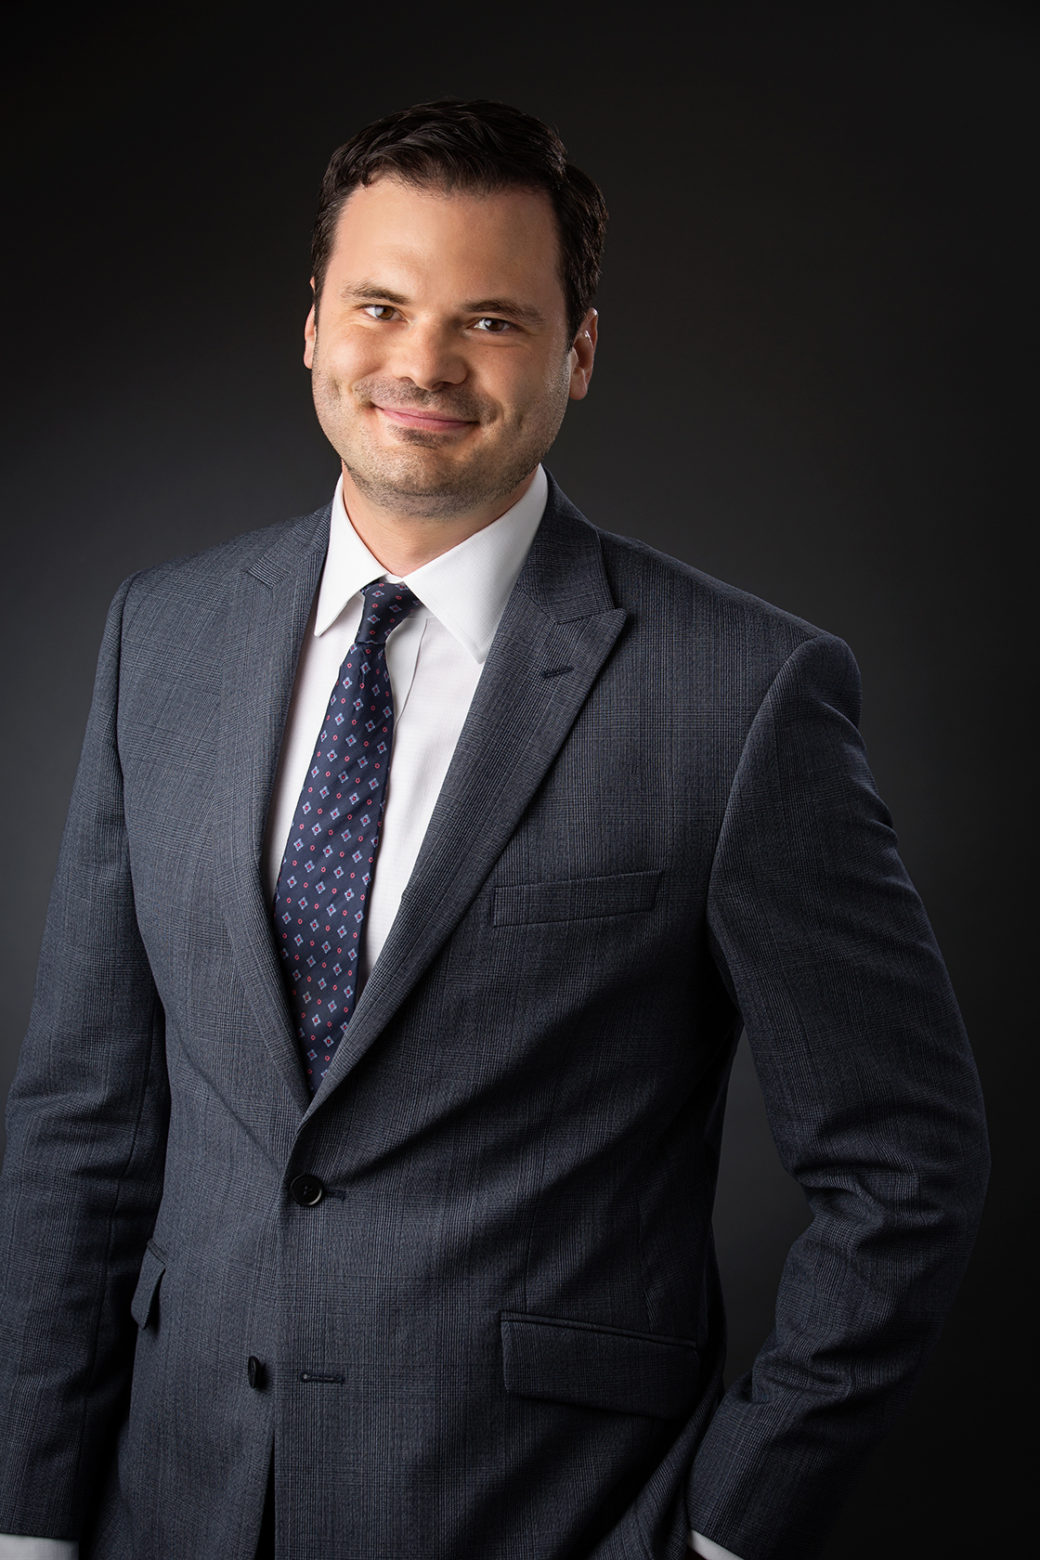 An adult male wearing a suit smiles